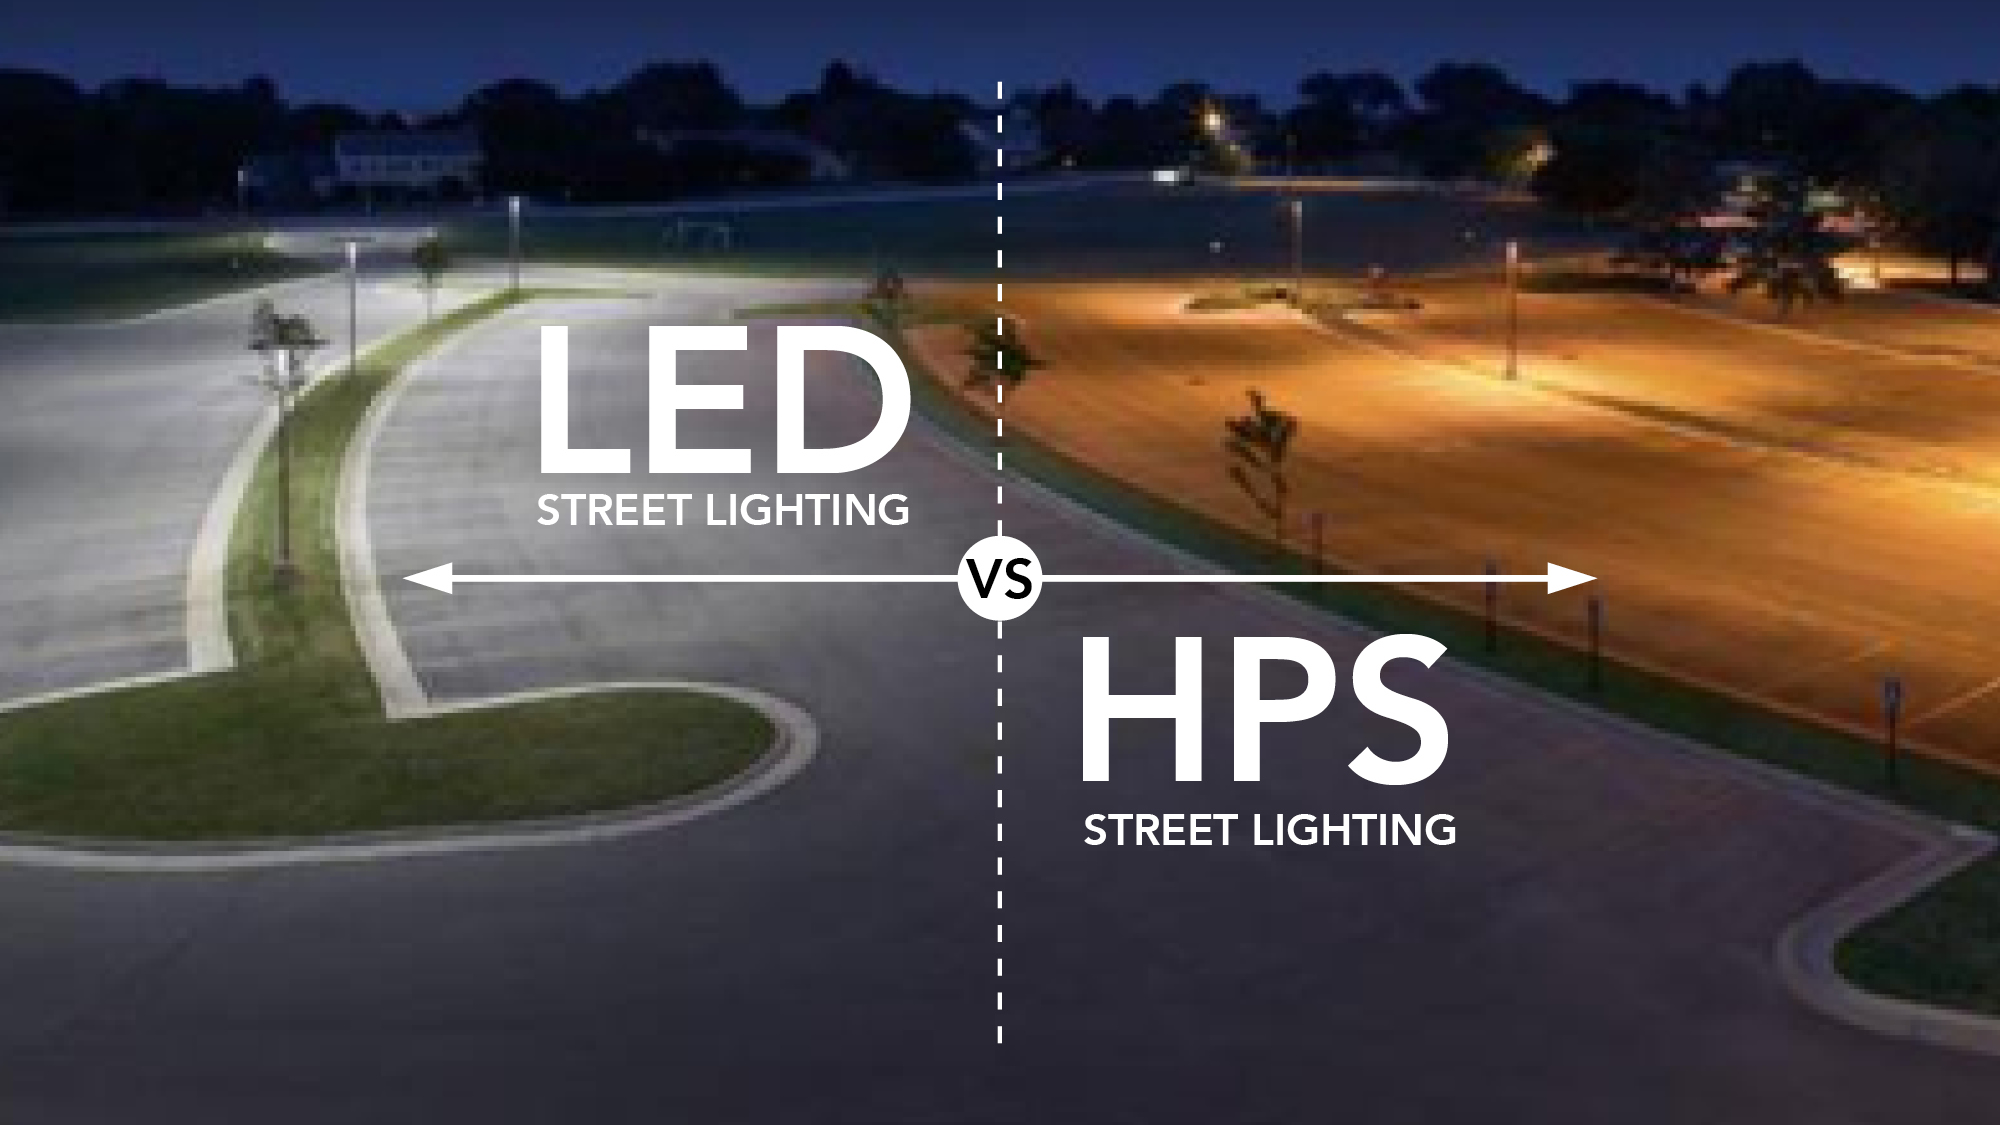 Pressure Sodium Hps Street Lighting Still Illuminating Most Of Our Streets And Neighborhoods Ledvshps